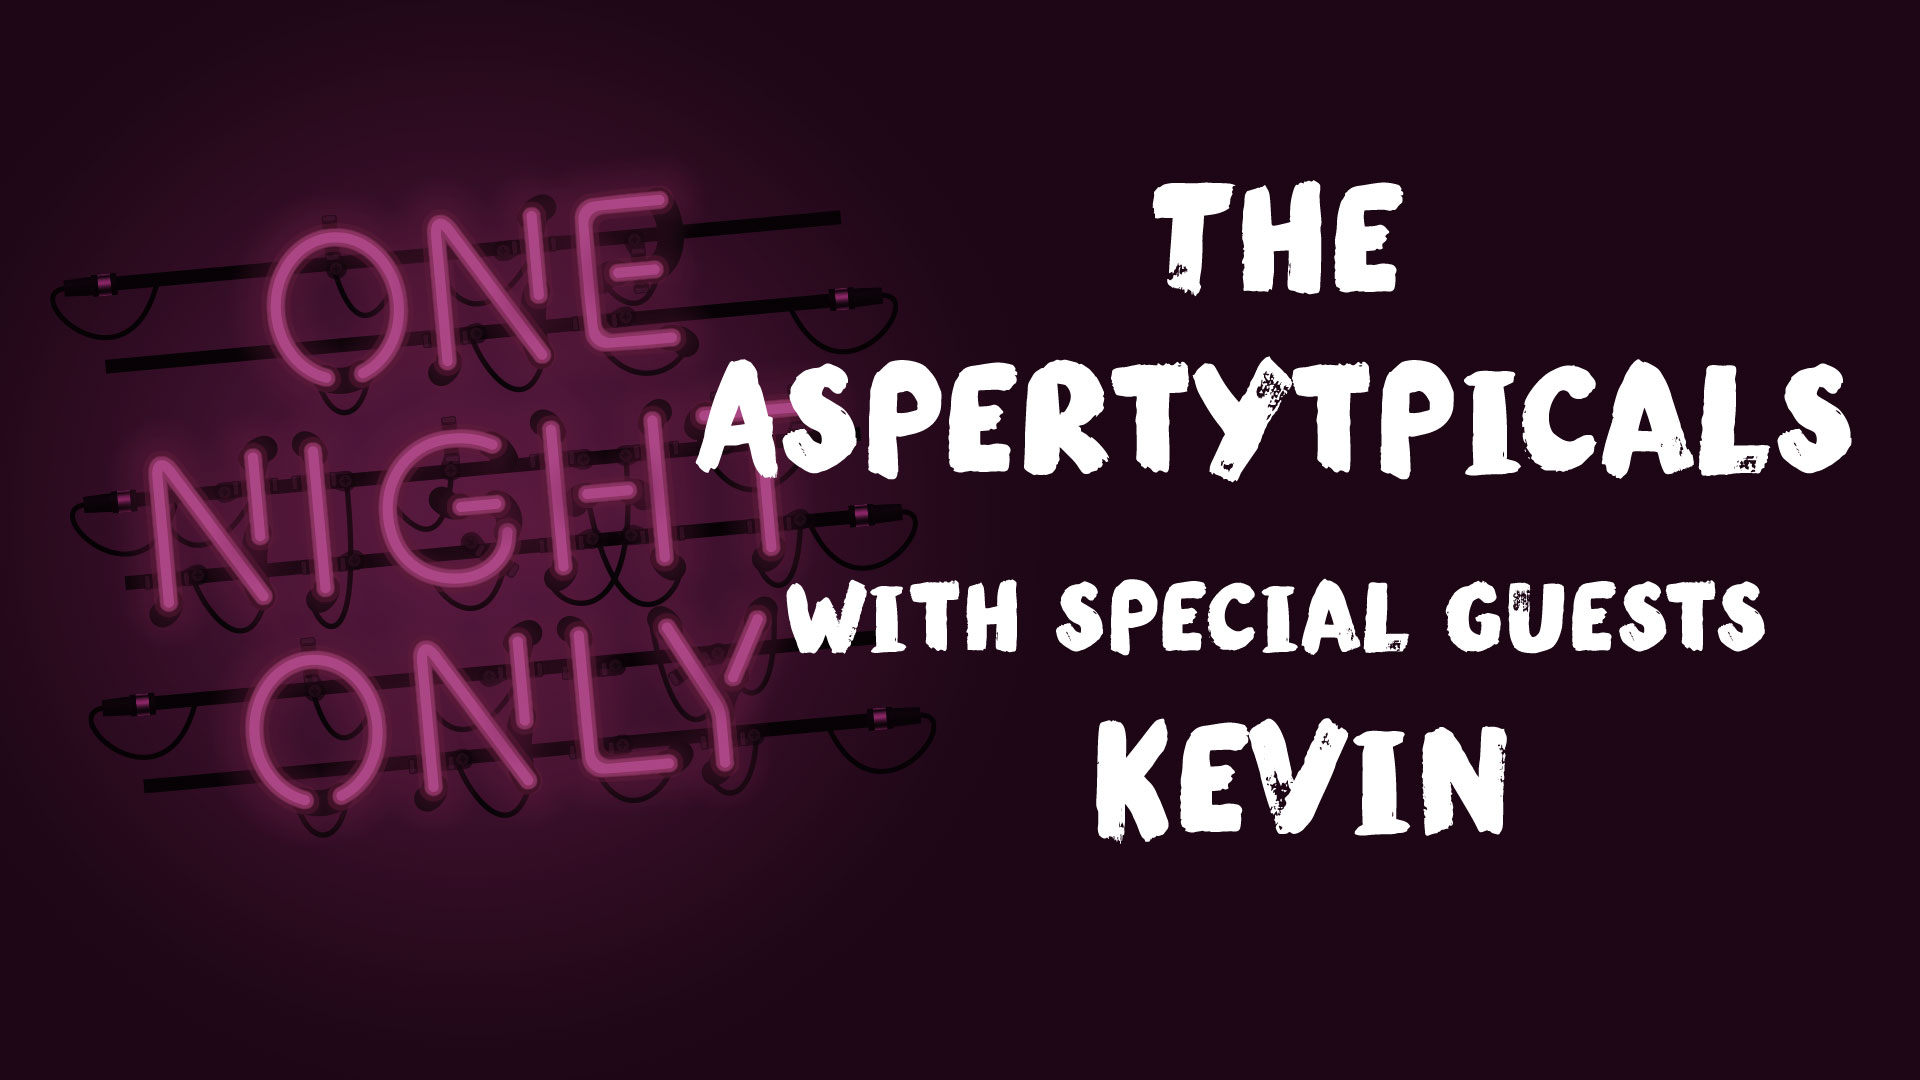 One Night Only: The Aspertytpicals with special guests Kevin